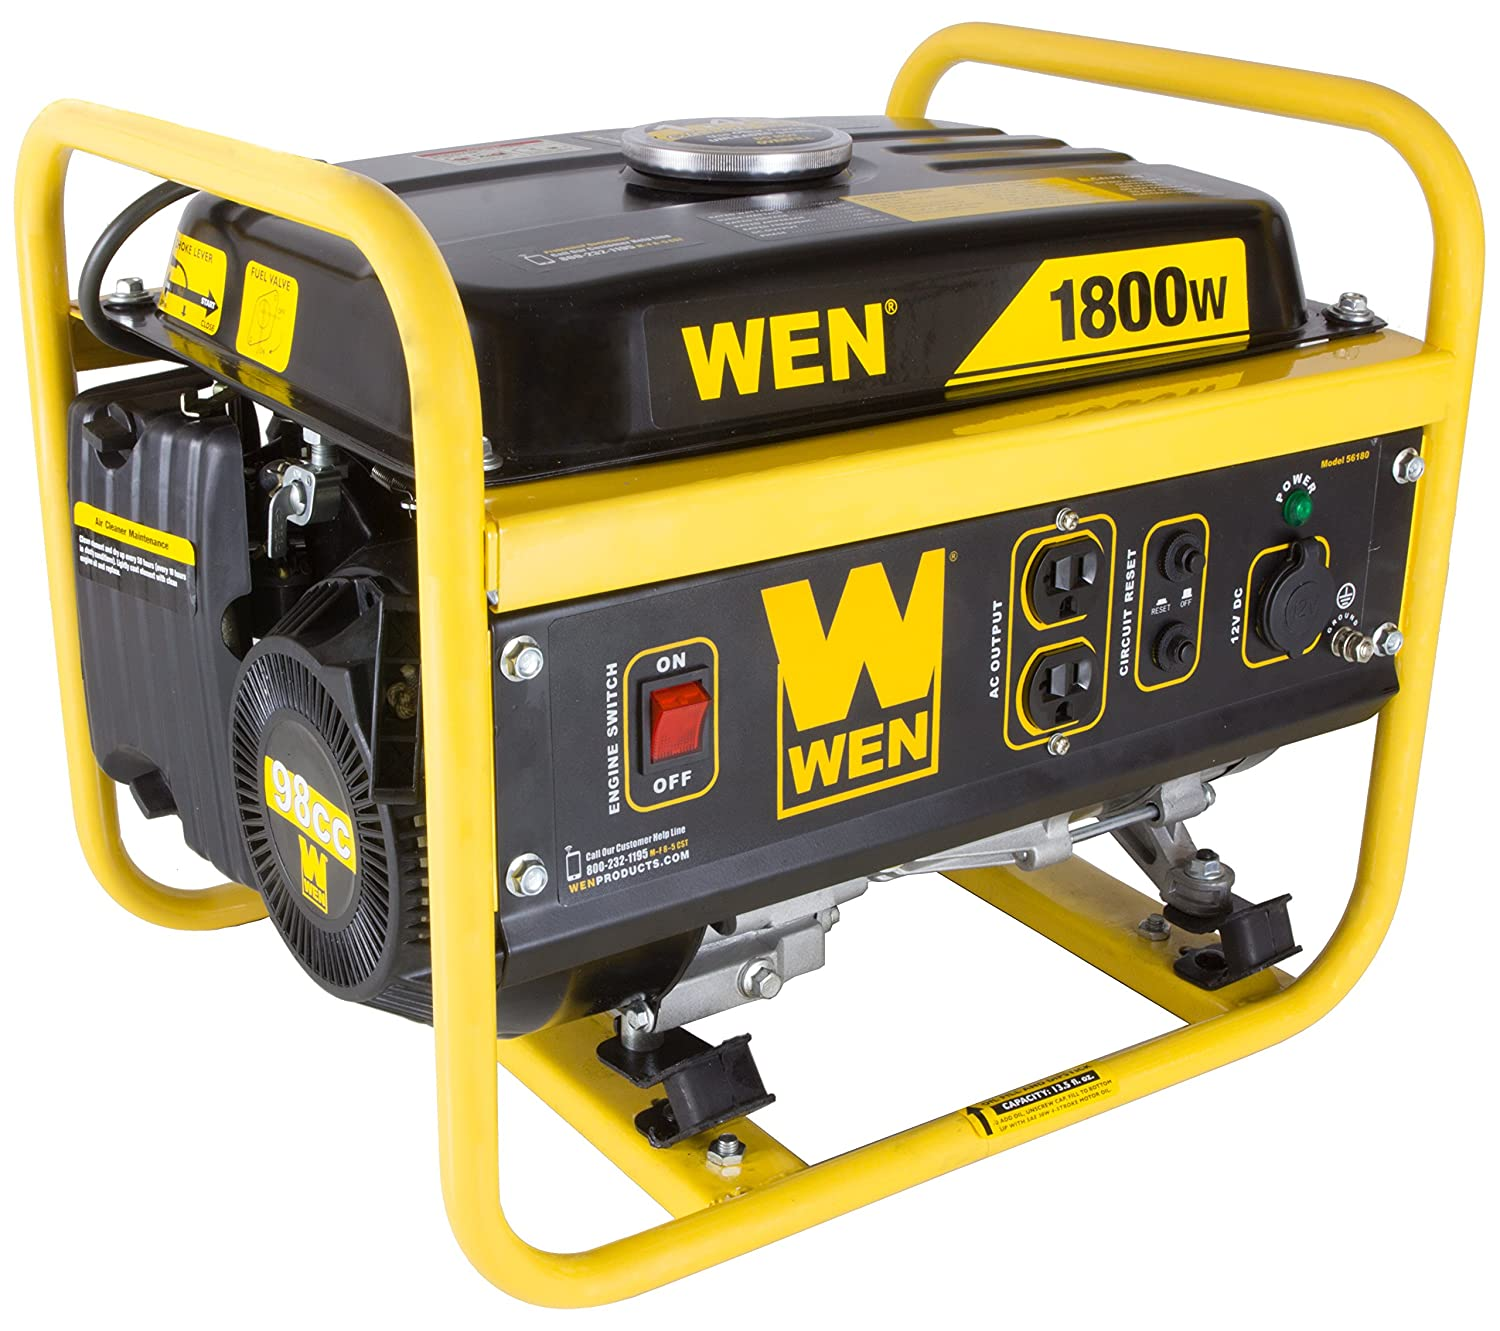 Inverter Generator Review Only The Top Portable Yamaha Ef1000is Technical Specs And Wiring Diagram Like Wen 56200i This Is Carb Compliant It Has 1500 Running Watts 1800 Starting Which Provides Power For Both Emergencies